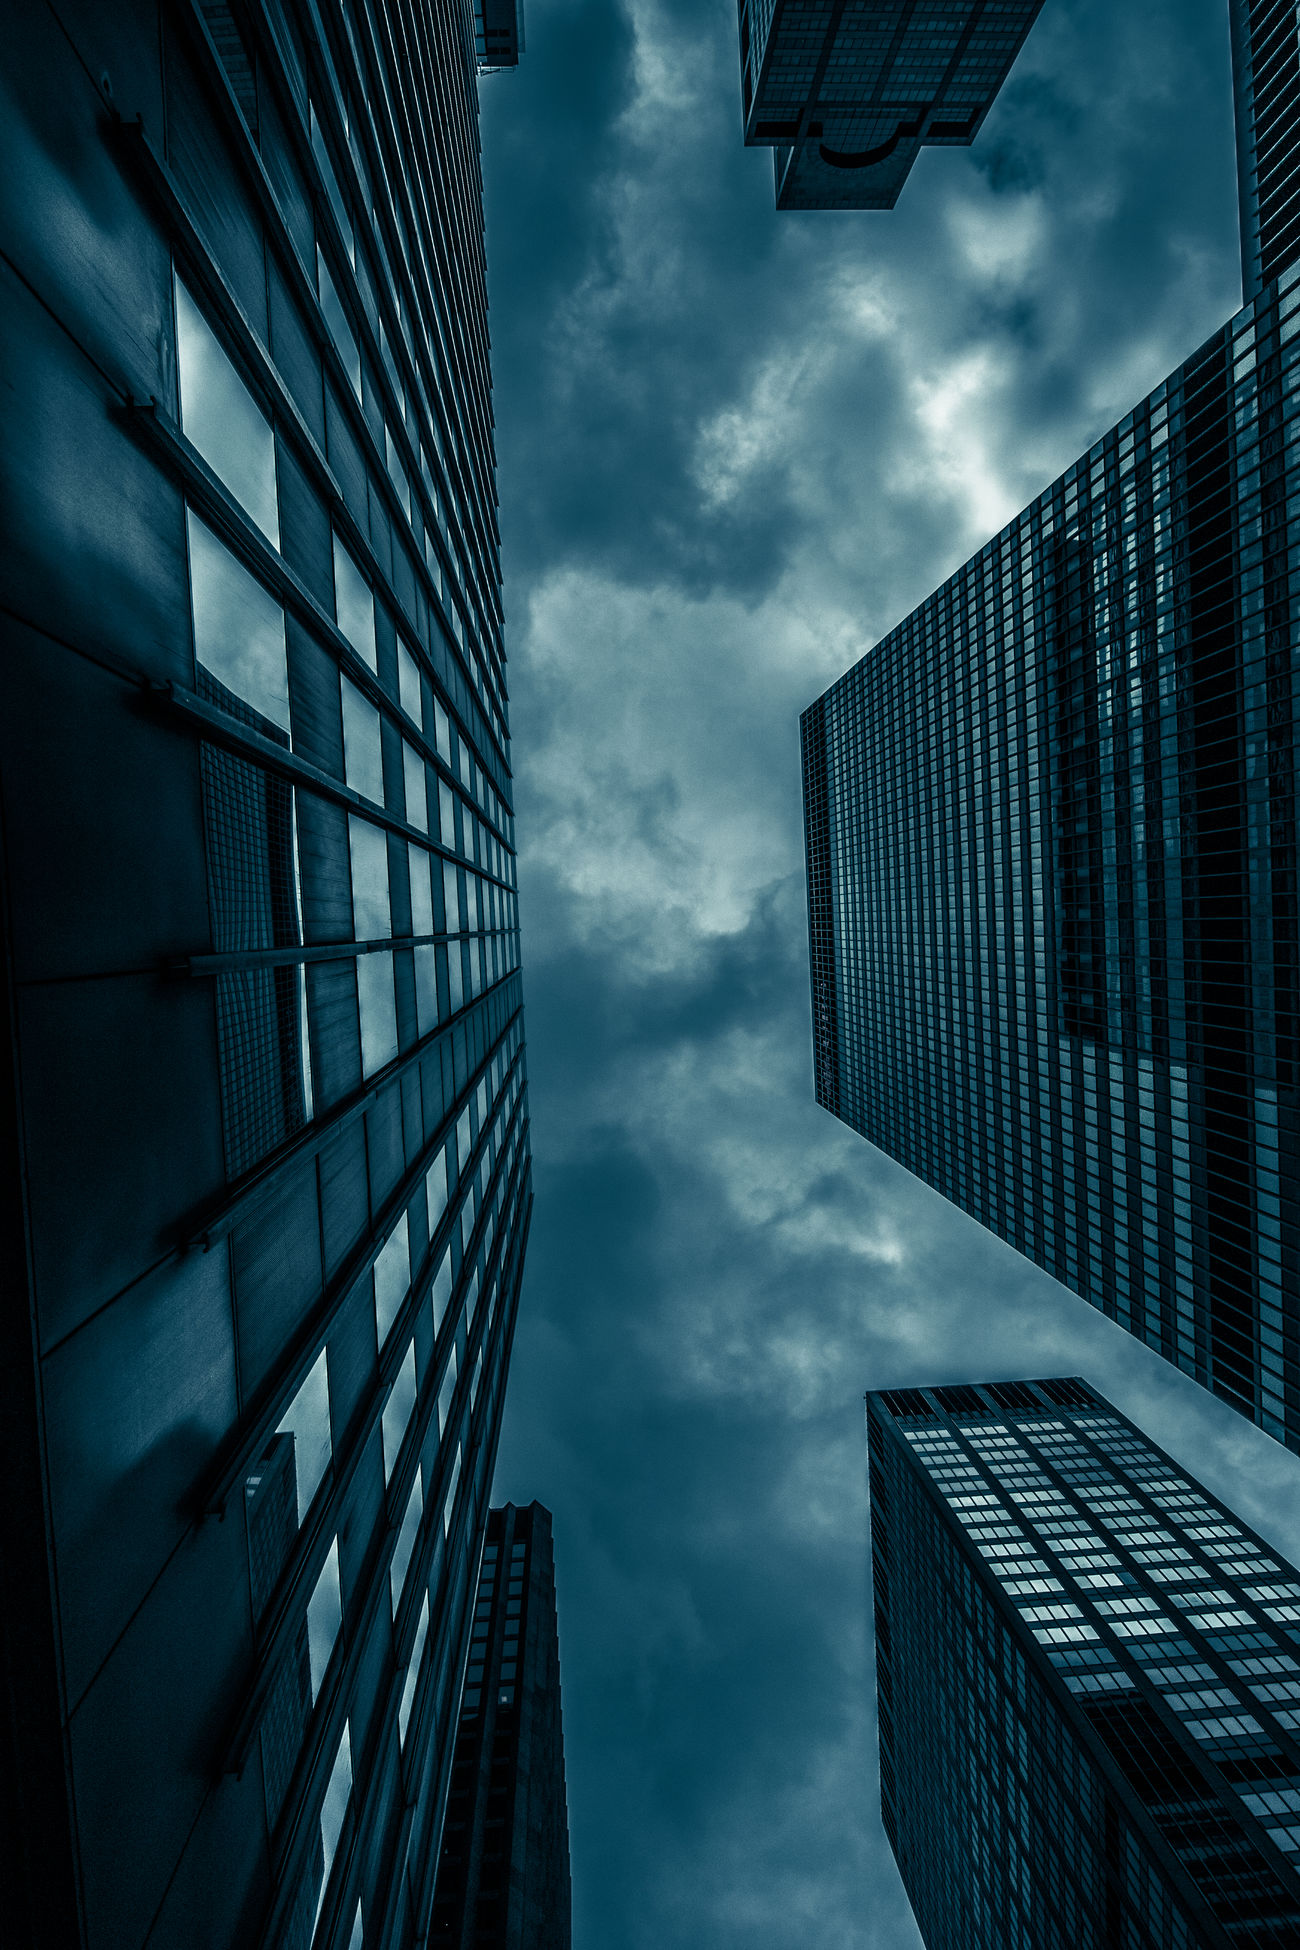 Night Light Architecture Building Exterior Built Structure City Cloud - Sky Corporate Business Day Low Angle View Modern No People Outdoors Reflection Sky Skyscraper Tall The Architect - 2017 EyeEm Awards